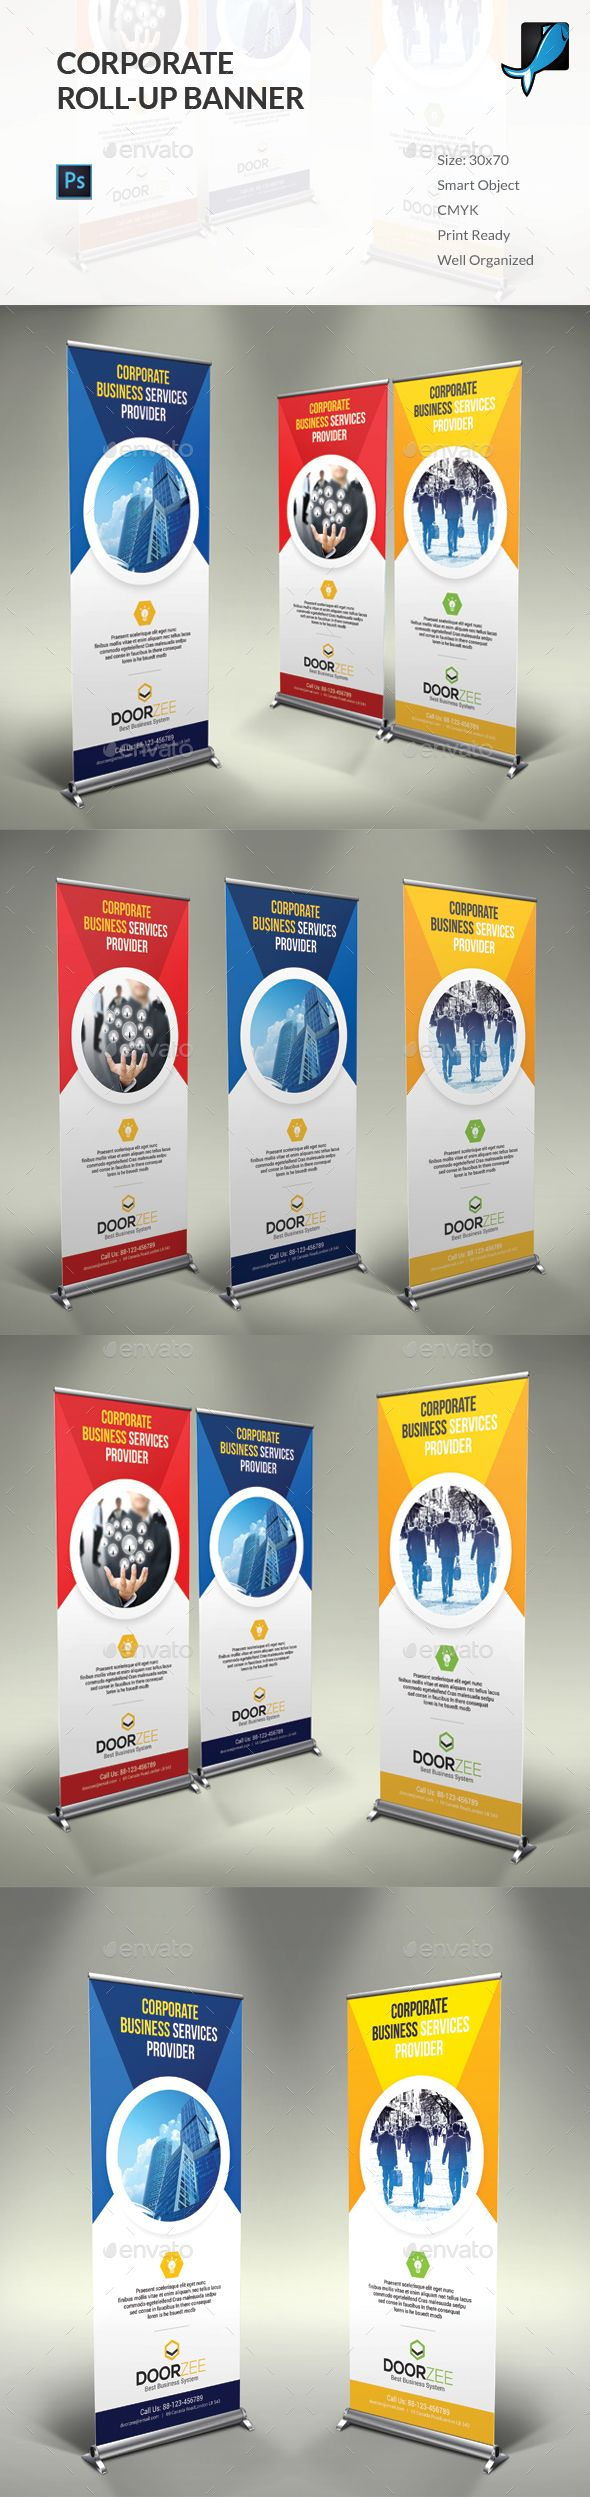 Corporate Rollup Banner Template PSD. Download here: http://graphicriver.net/item/corporate-rollup-banner/14926857?ref=ksioks